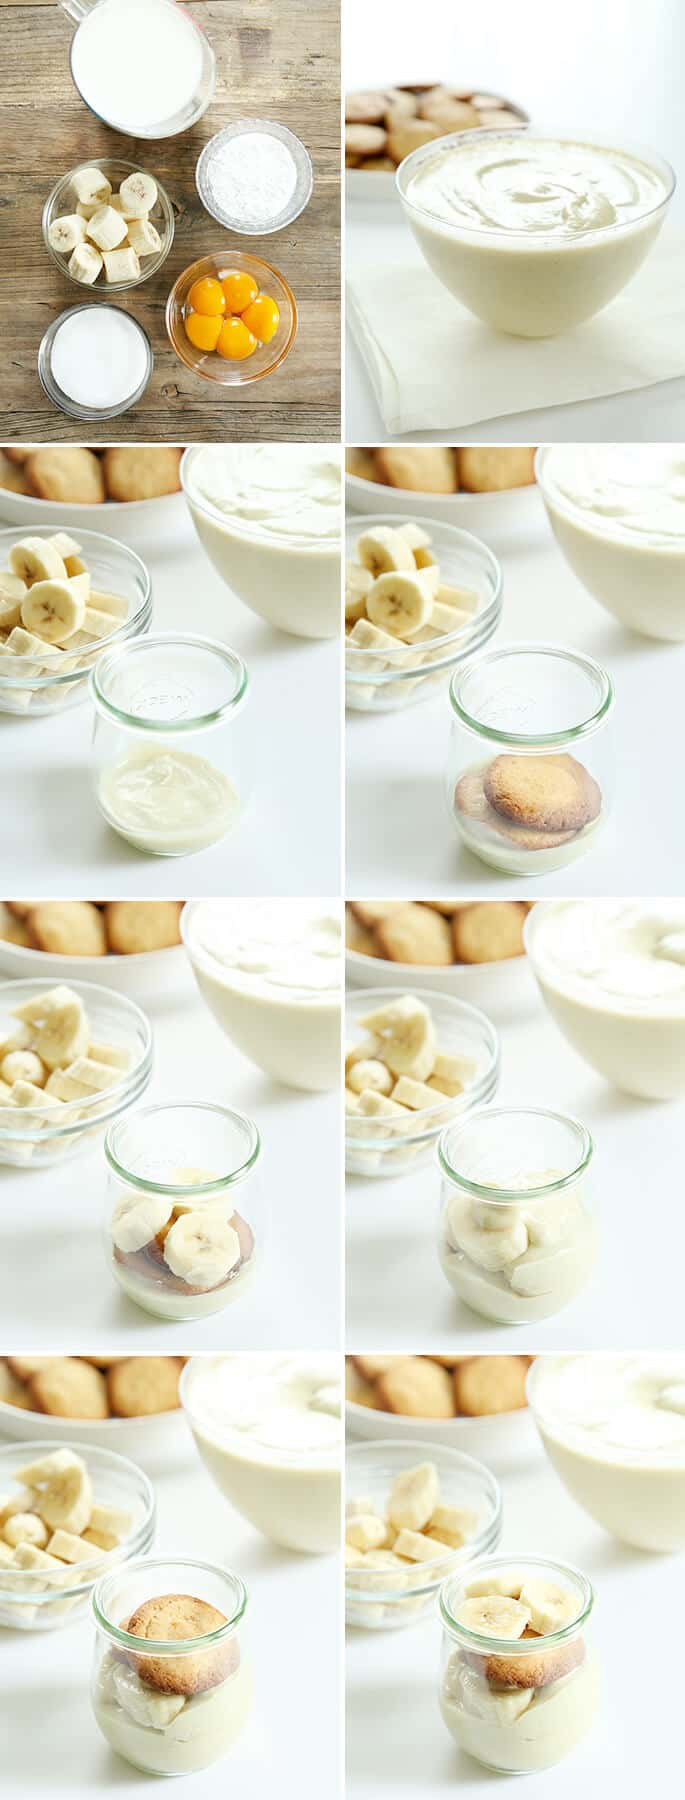 Banana pudding being assembled in jar on white surface